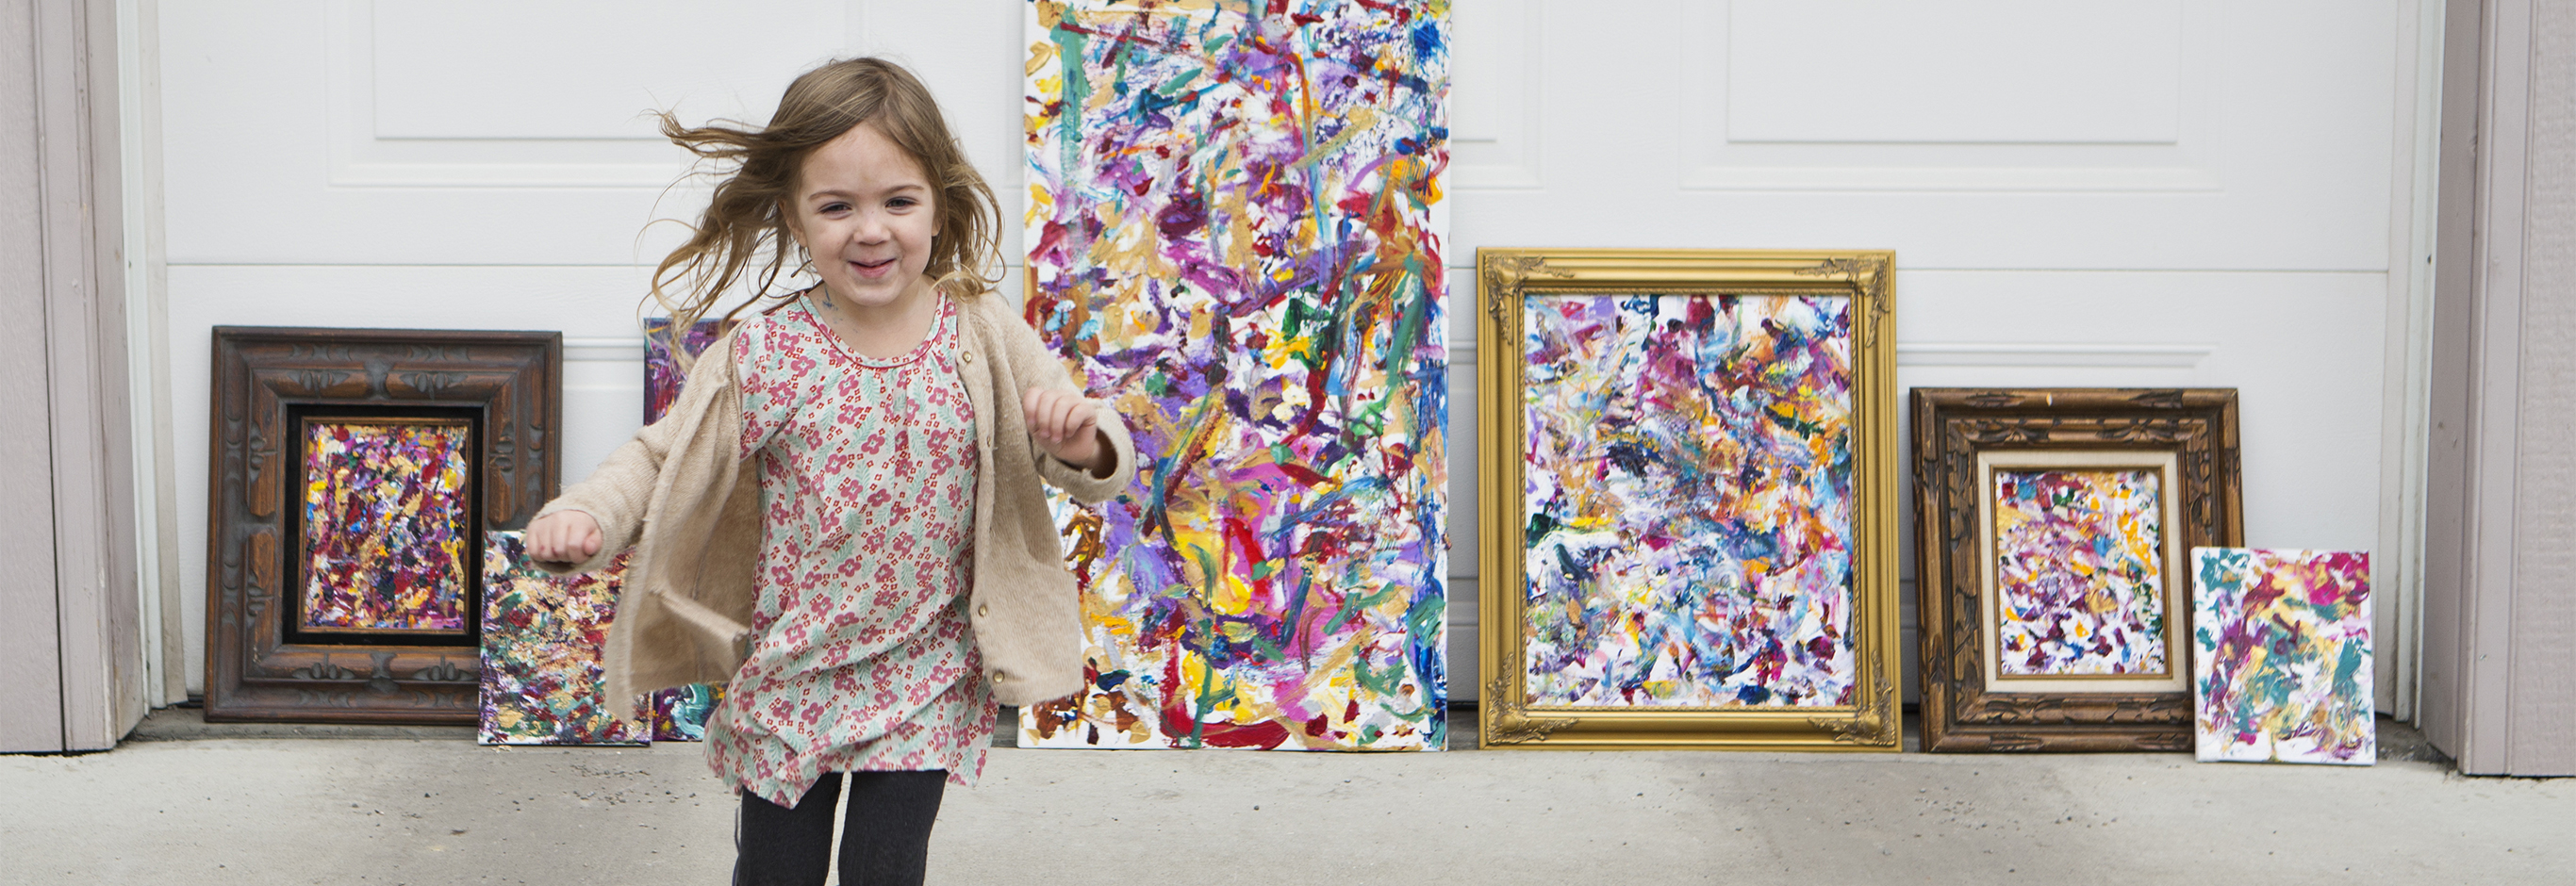 Small girl running away from paintings leaned against a garage.